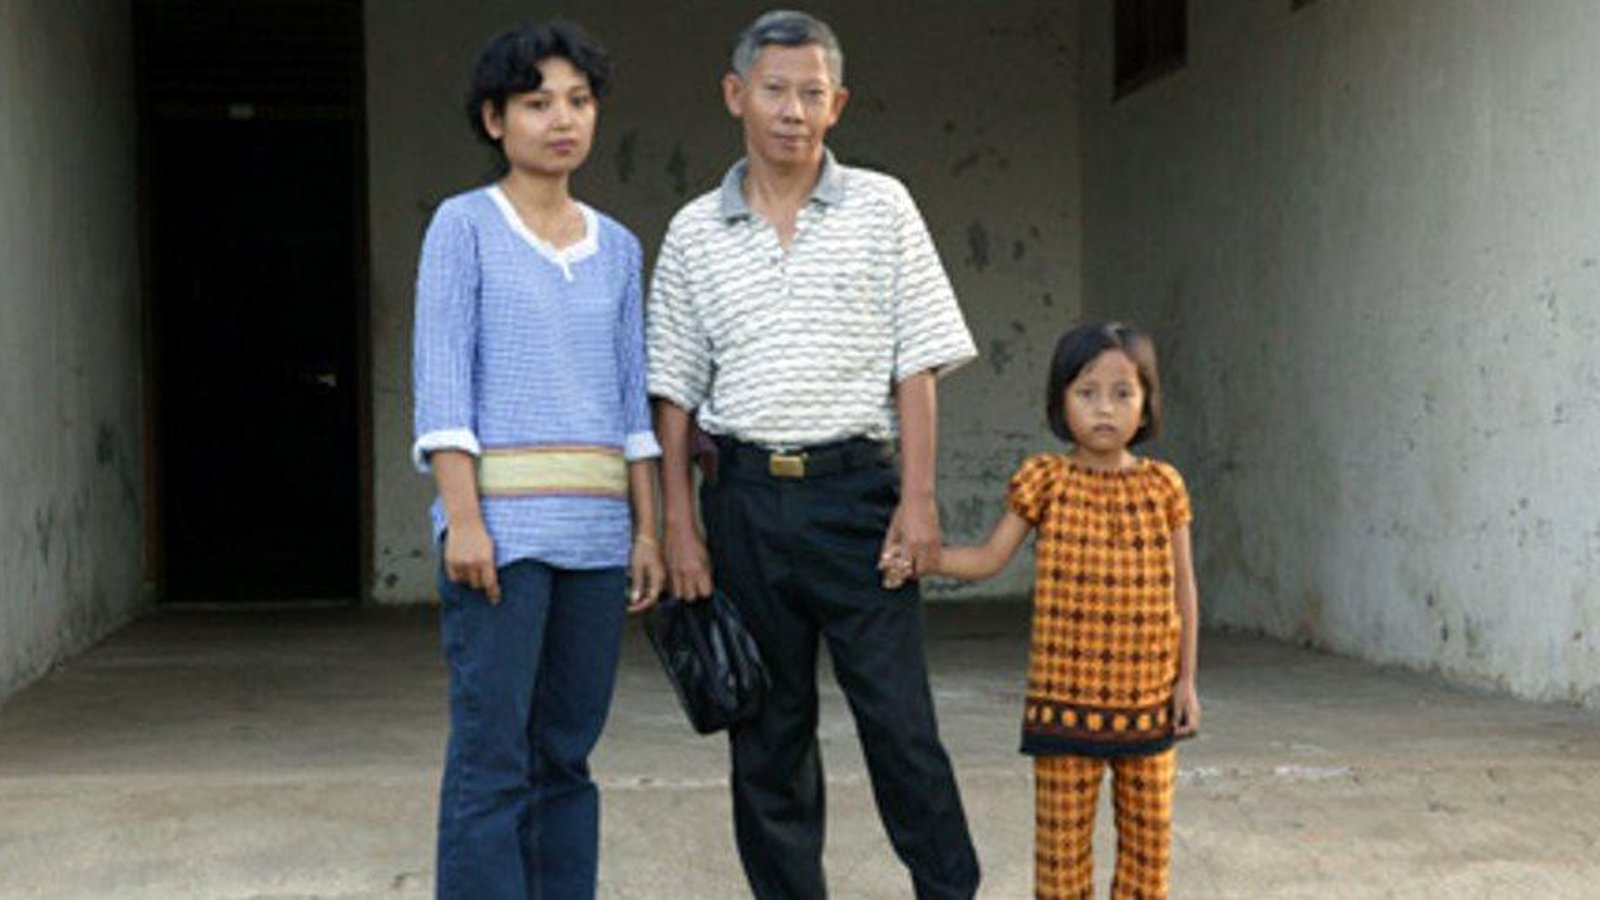 Standing on the Edge of a Thorn - A family in Rural Indonesia